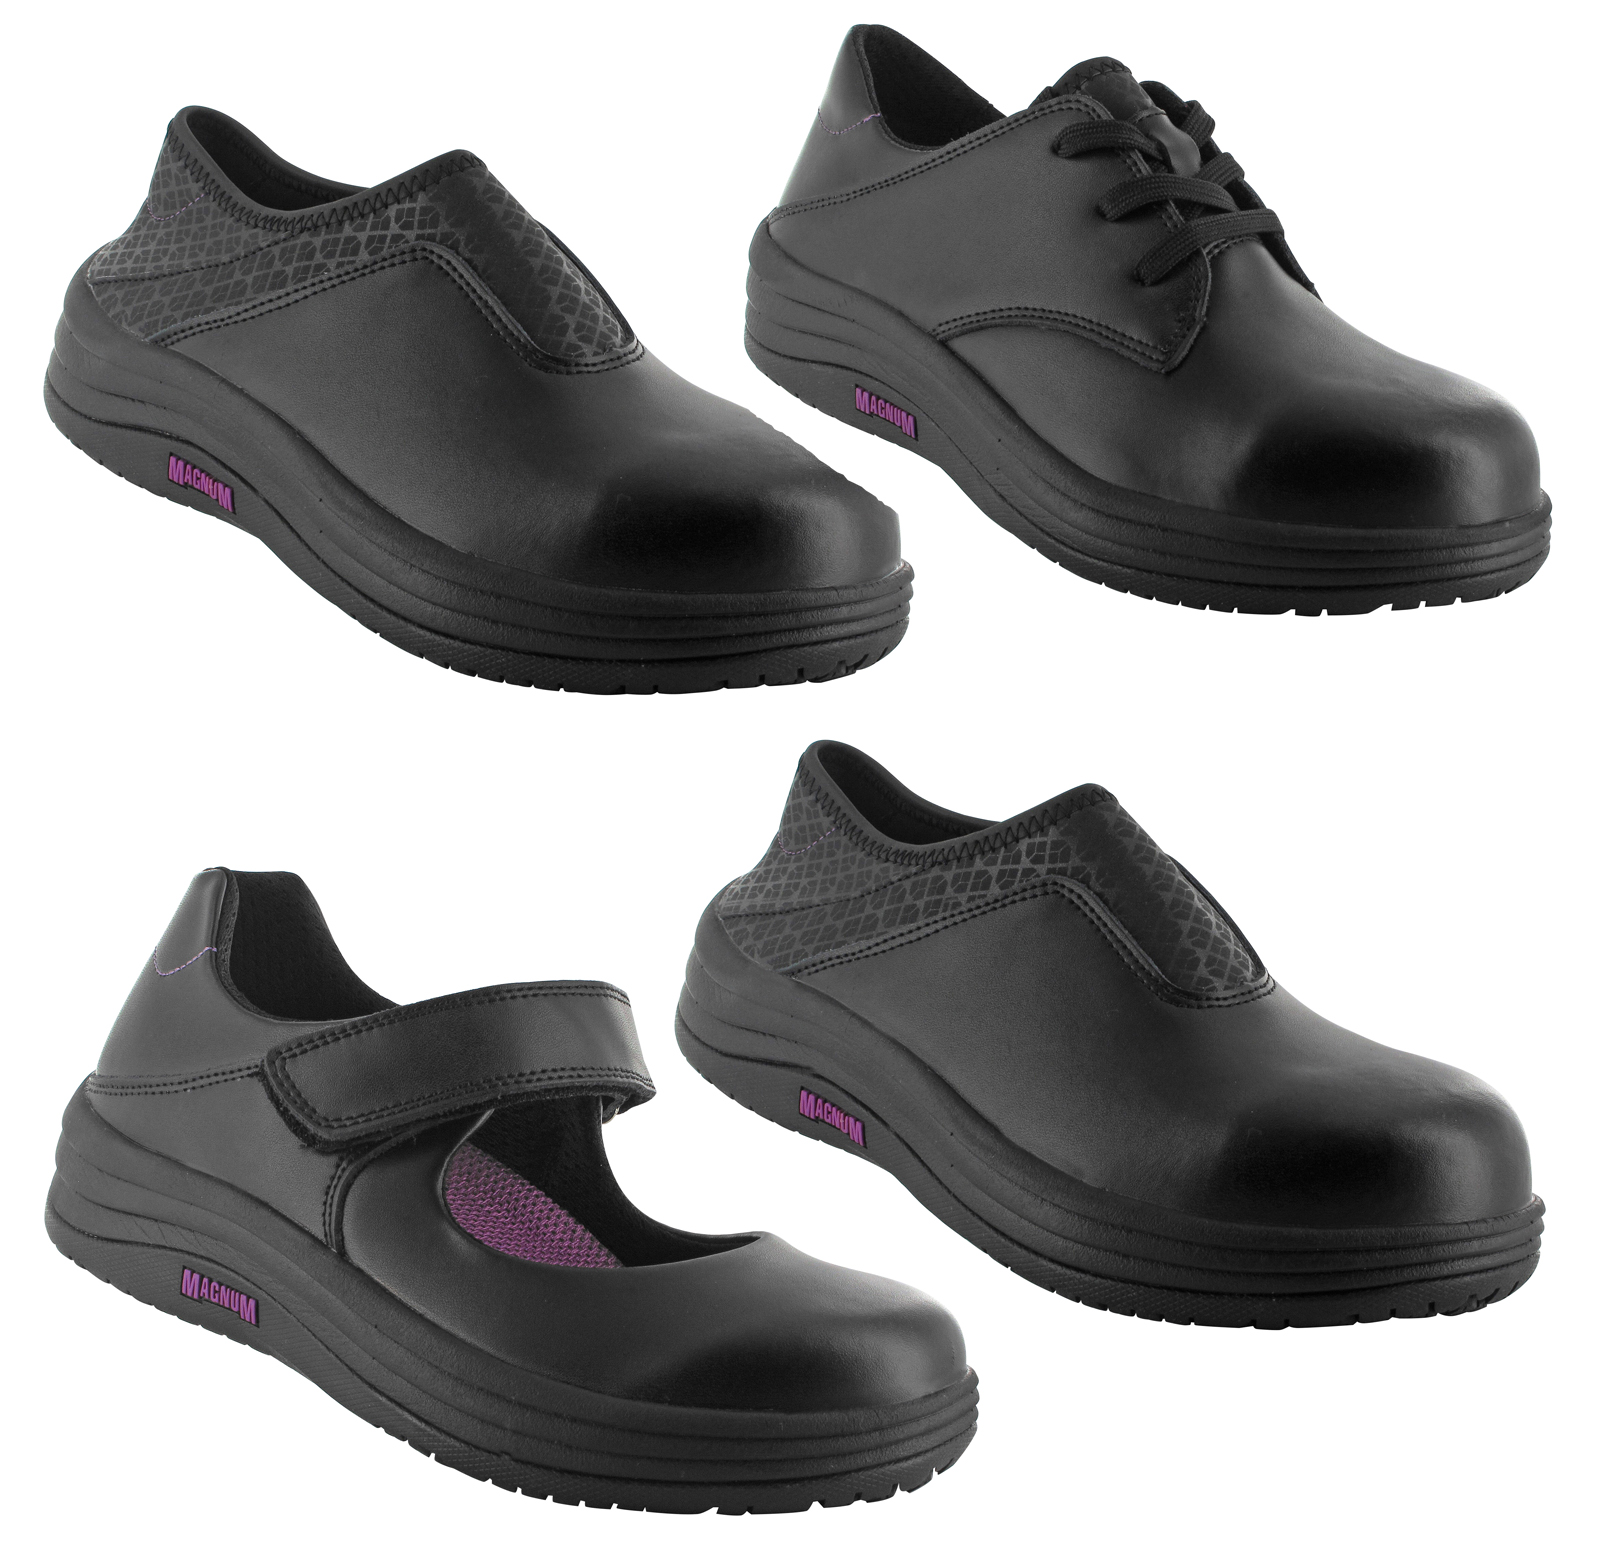 Shoes For Crews - Ballerina II - Black / Women's Slip Resistant Dress Shoes